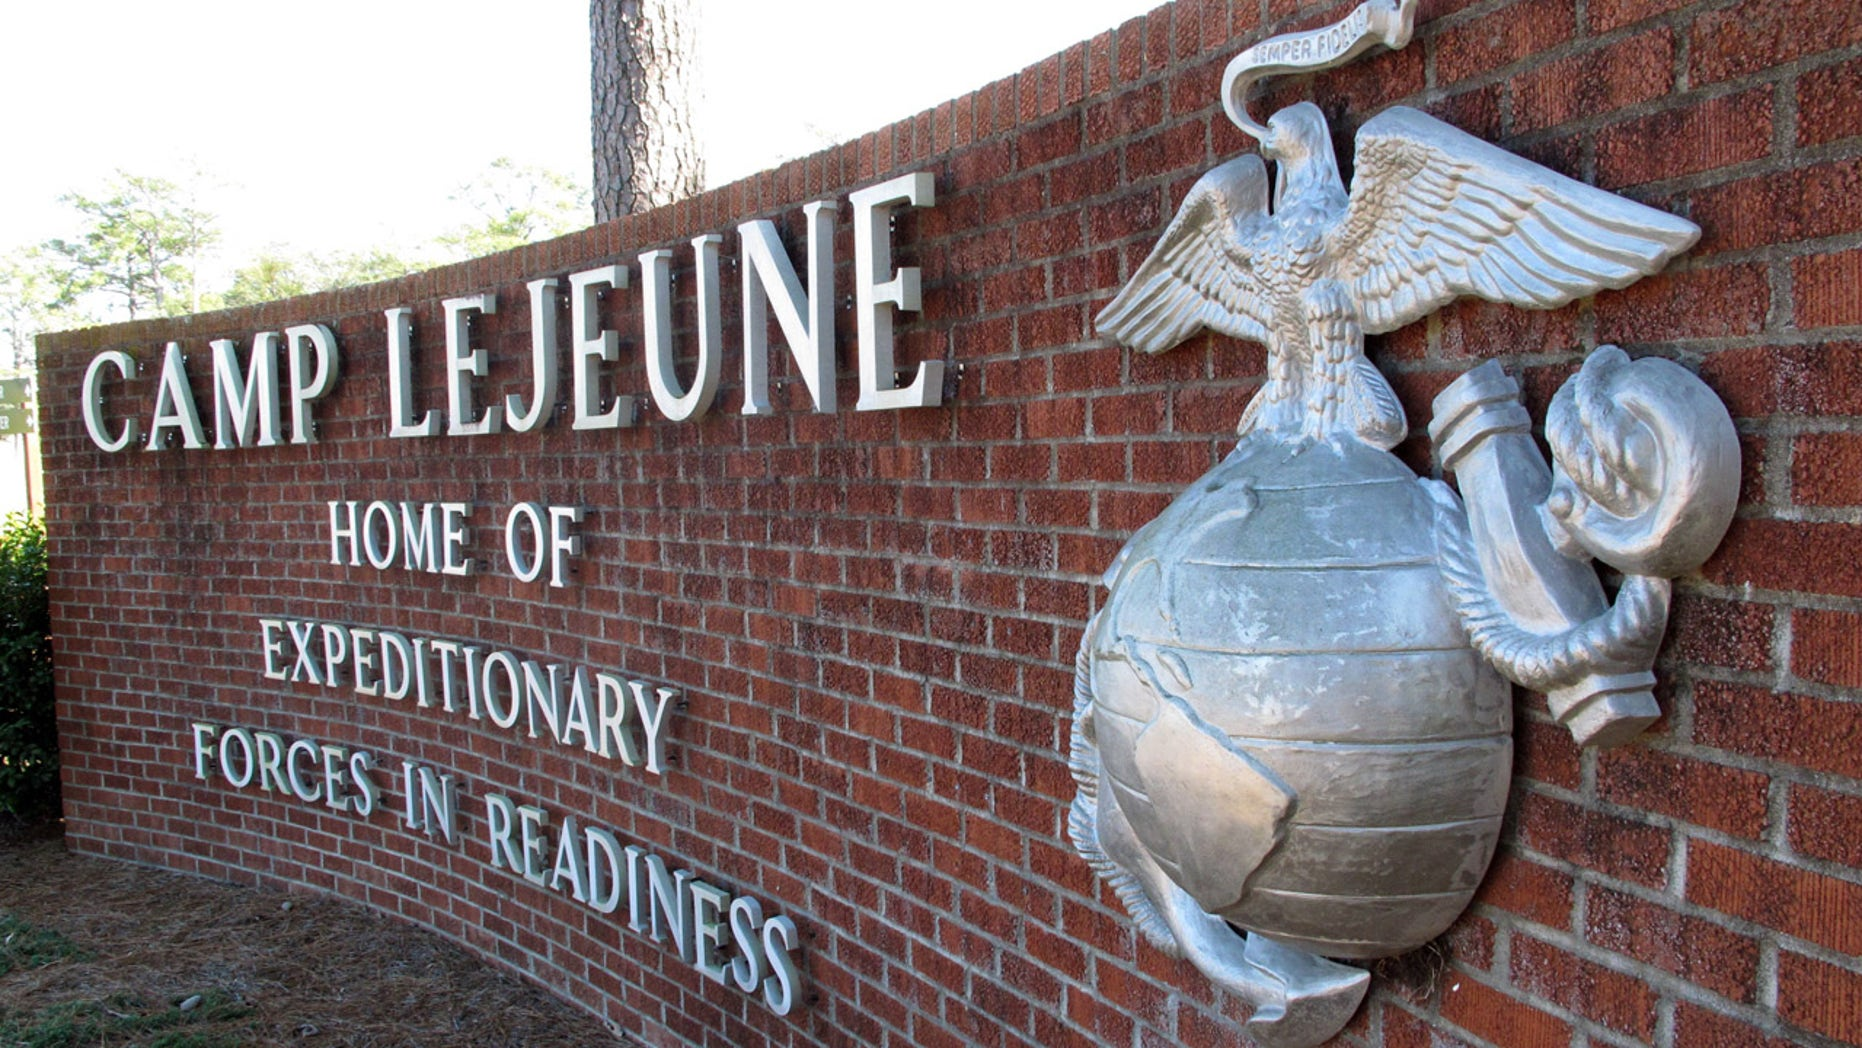 March 19, 2013: The globe and anchor stand at the entrance to Camp Lejeune, N.C.